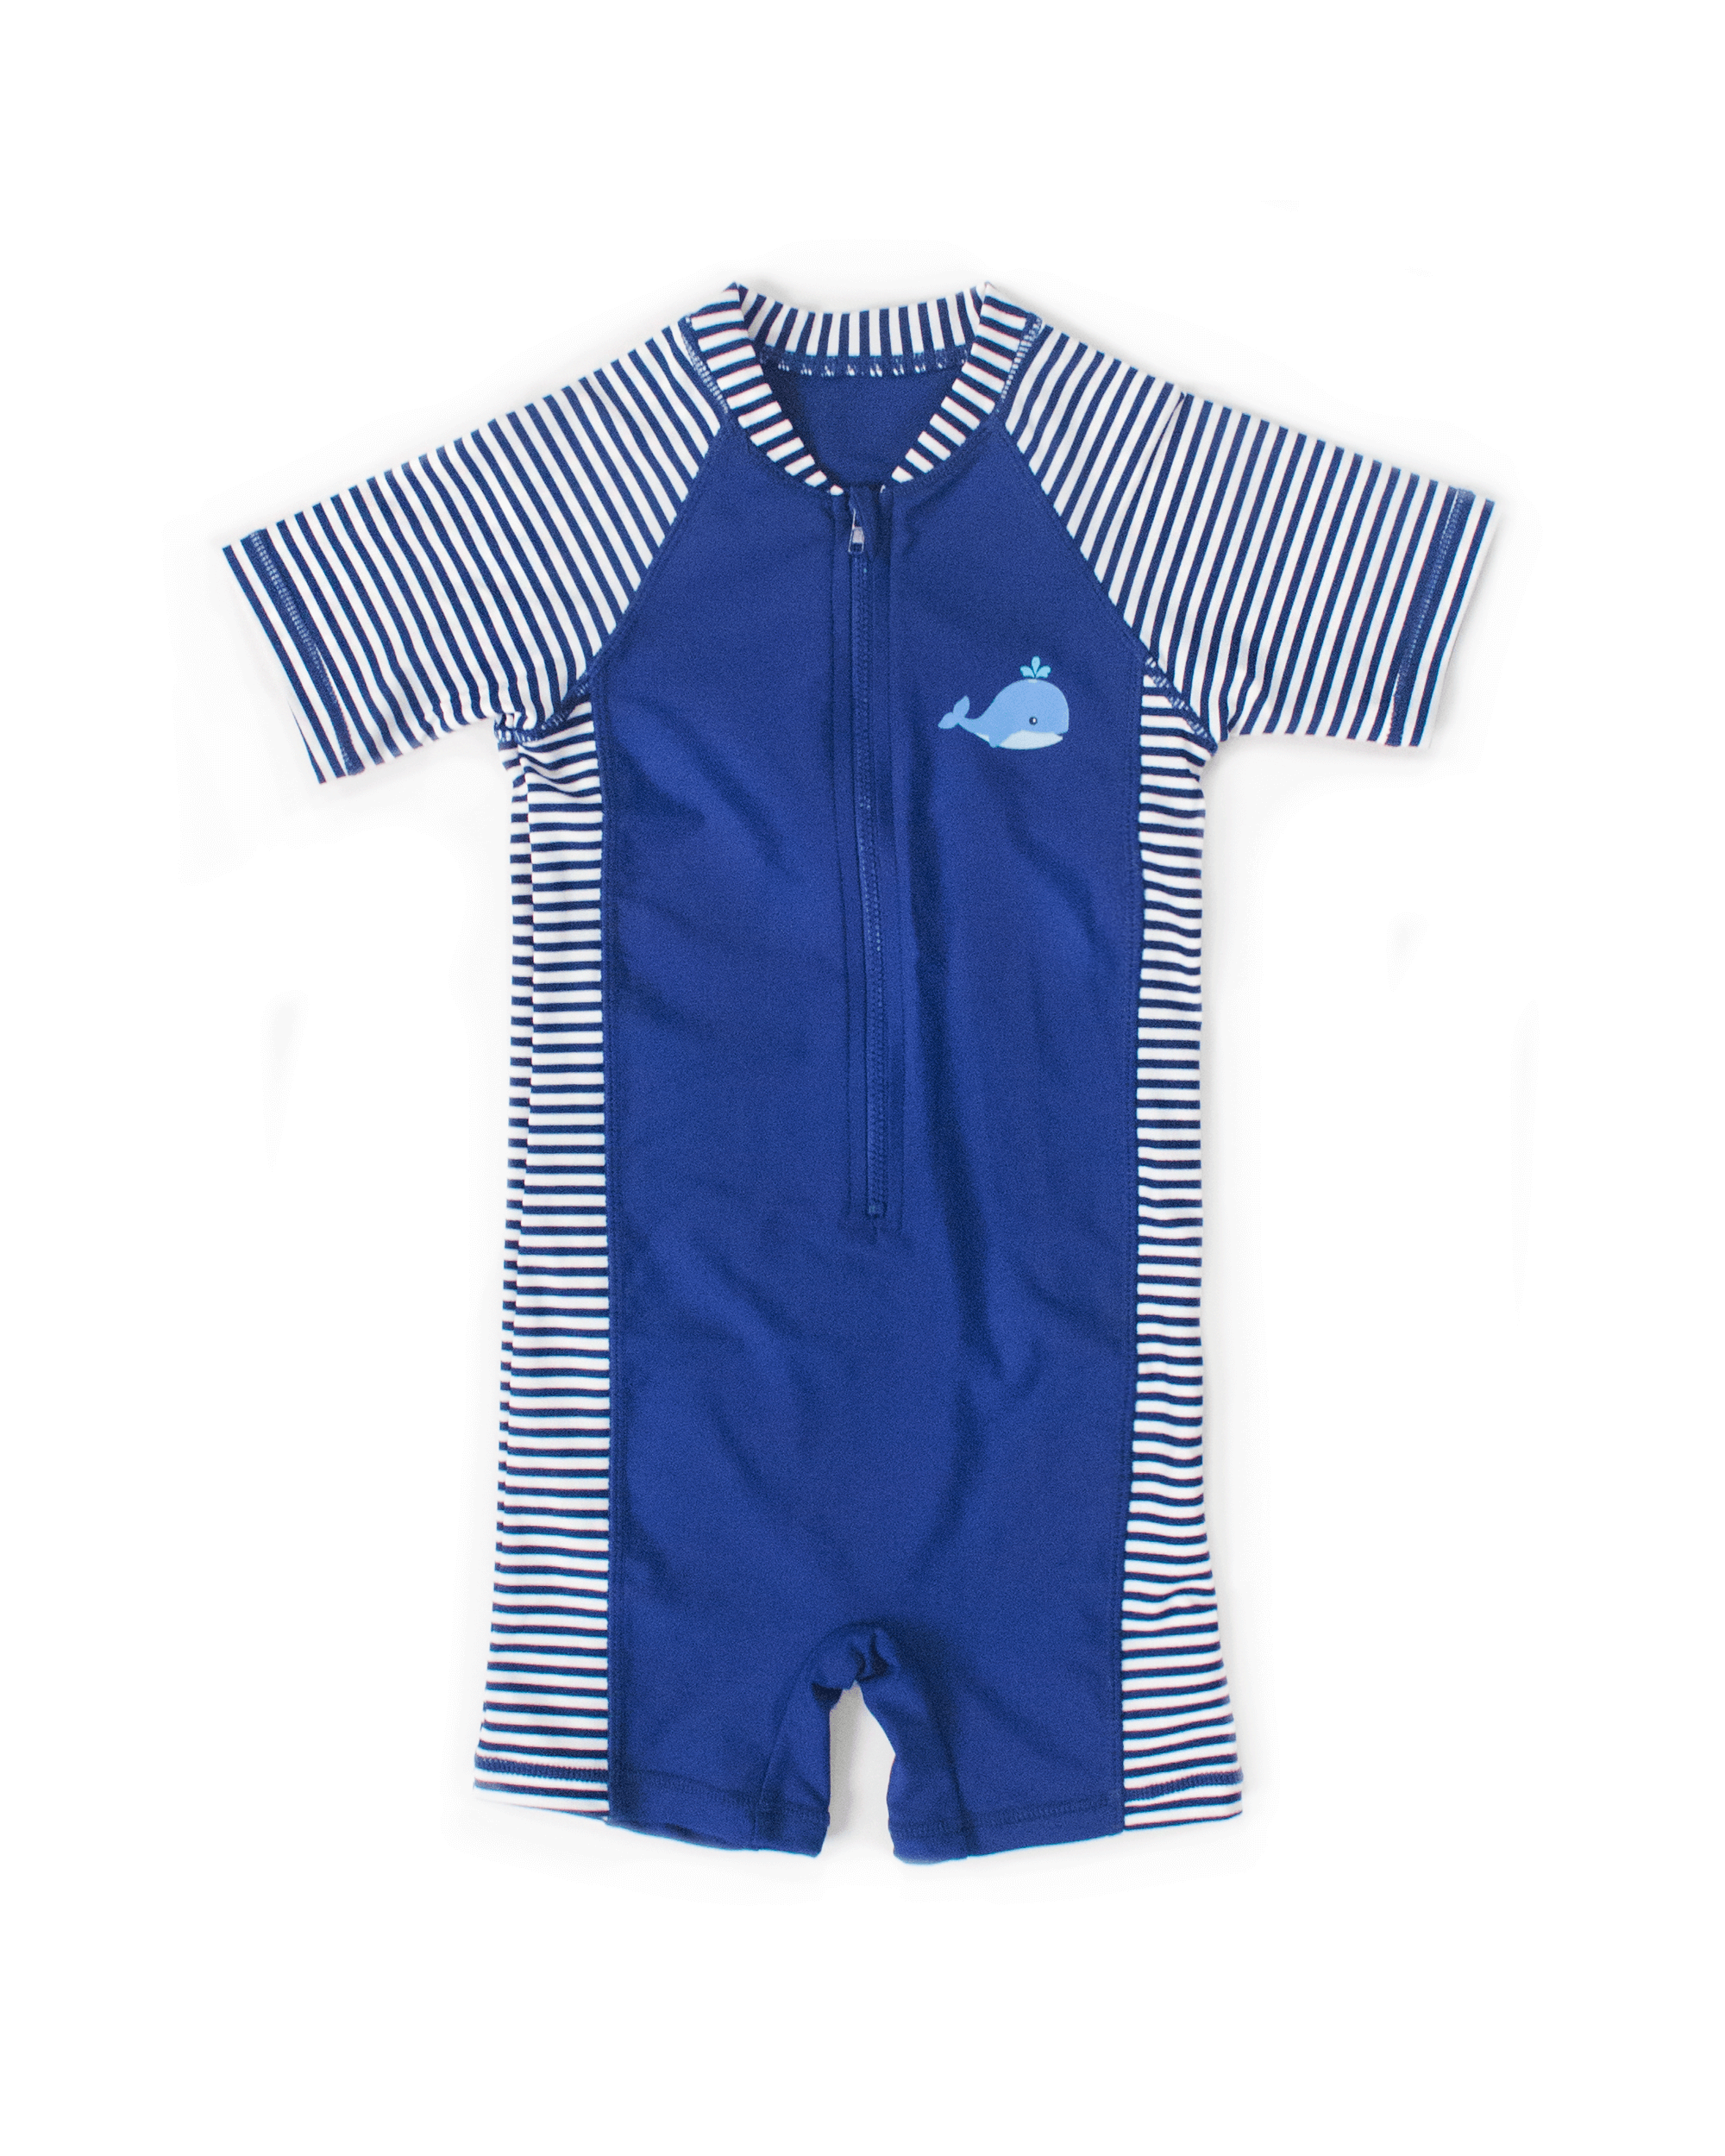 UPF50+ Junior Sunsuit (Unisex) in Stripes/ Navy